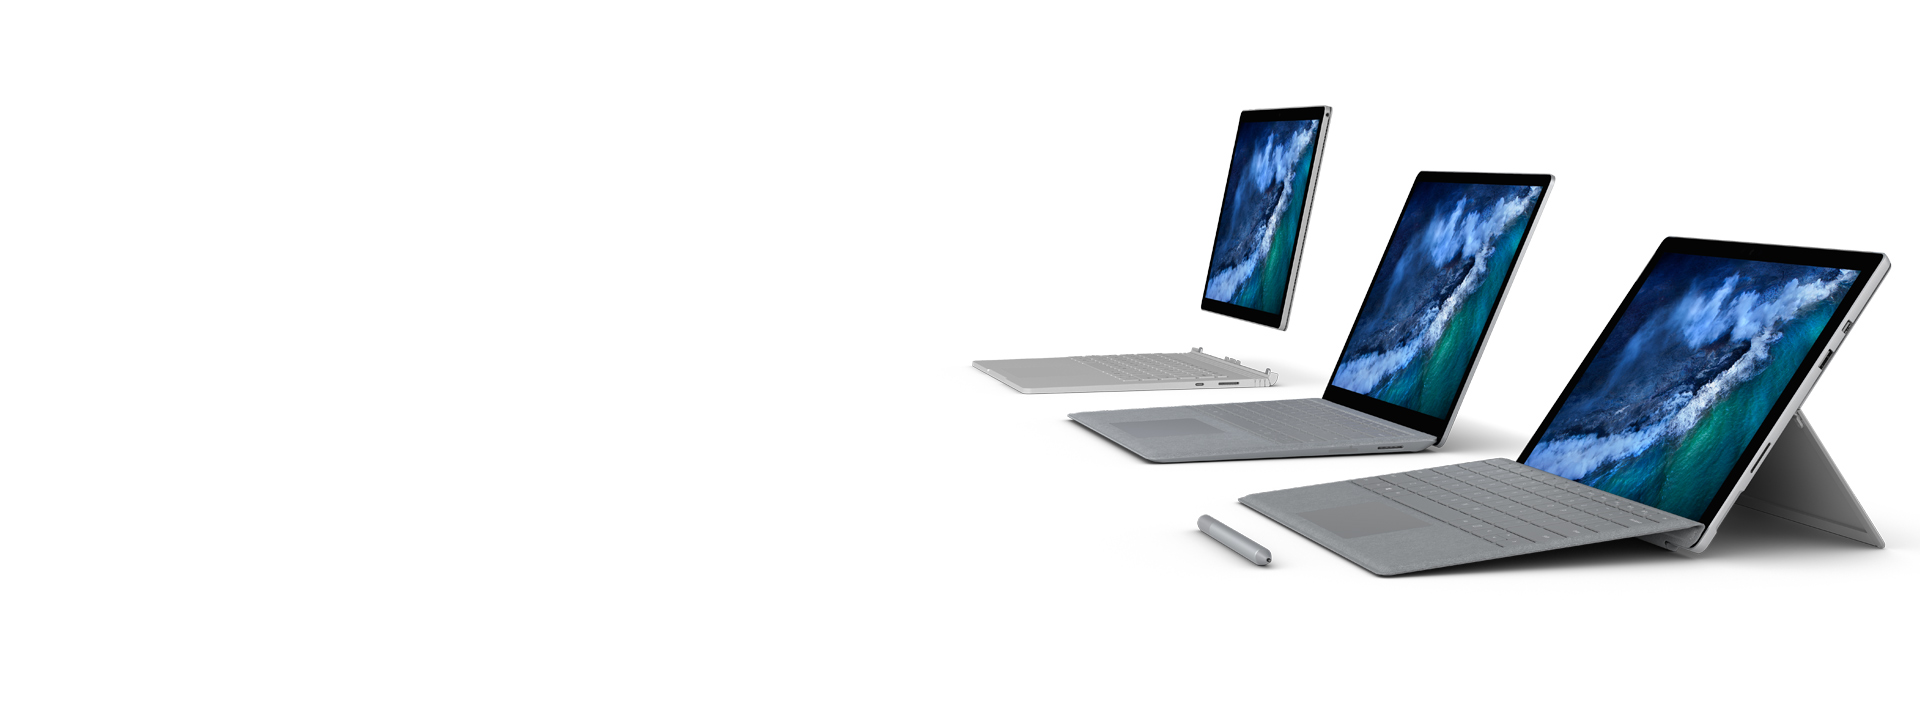 Die Surface-Familie: Surface Pro, Surface Laptop und Surface Book 2